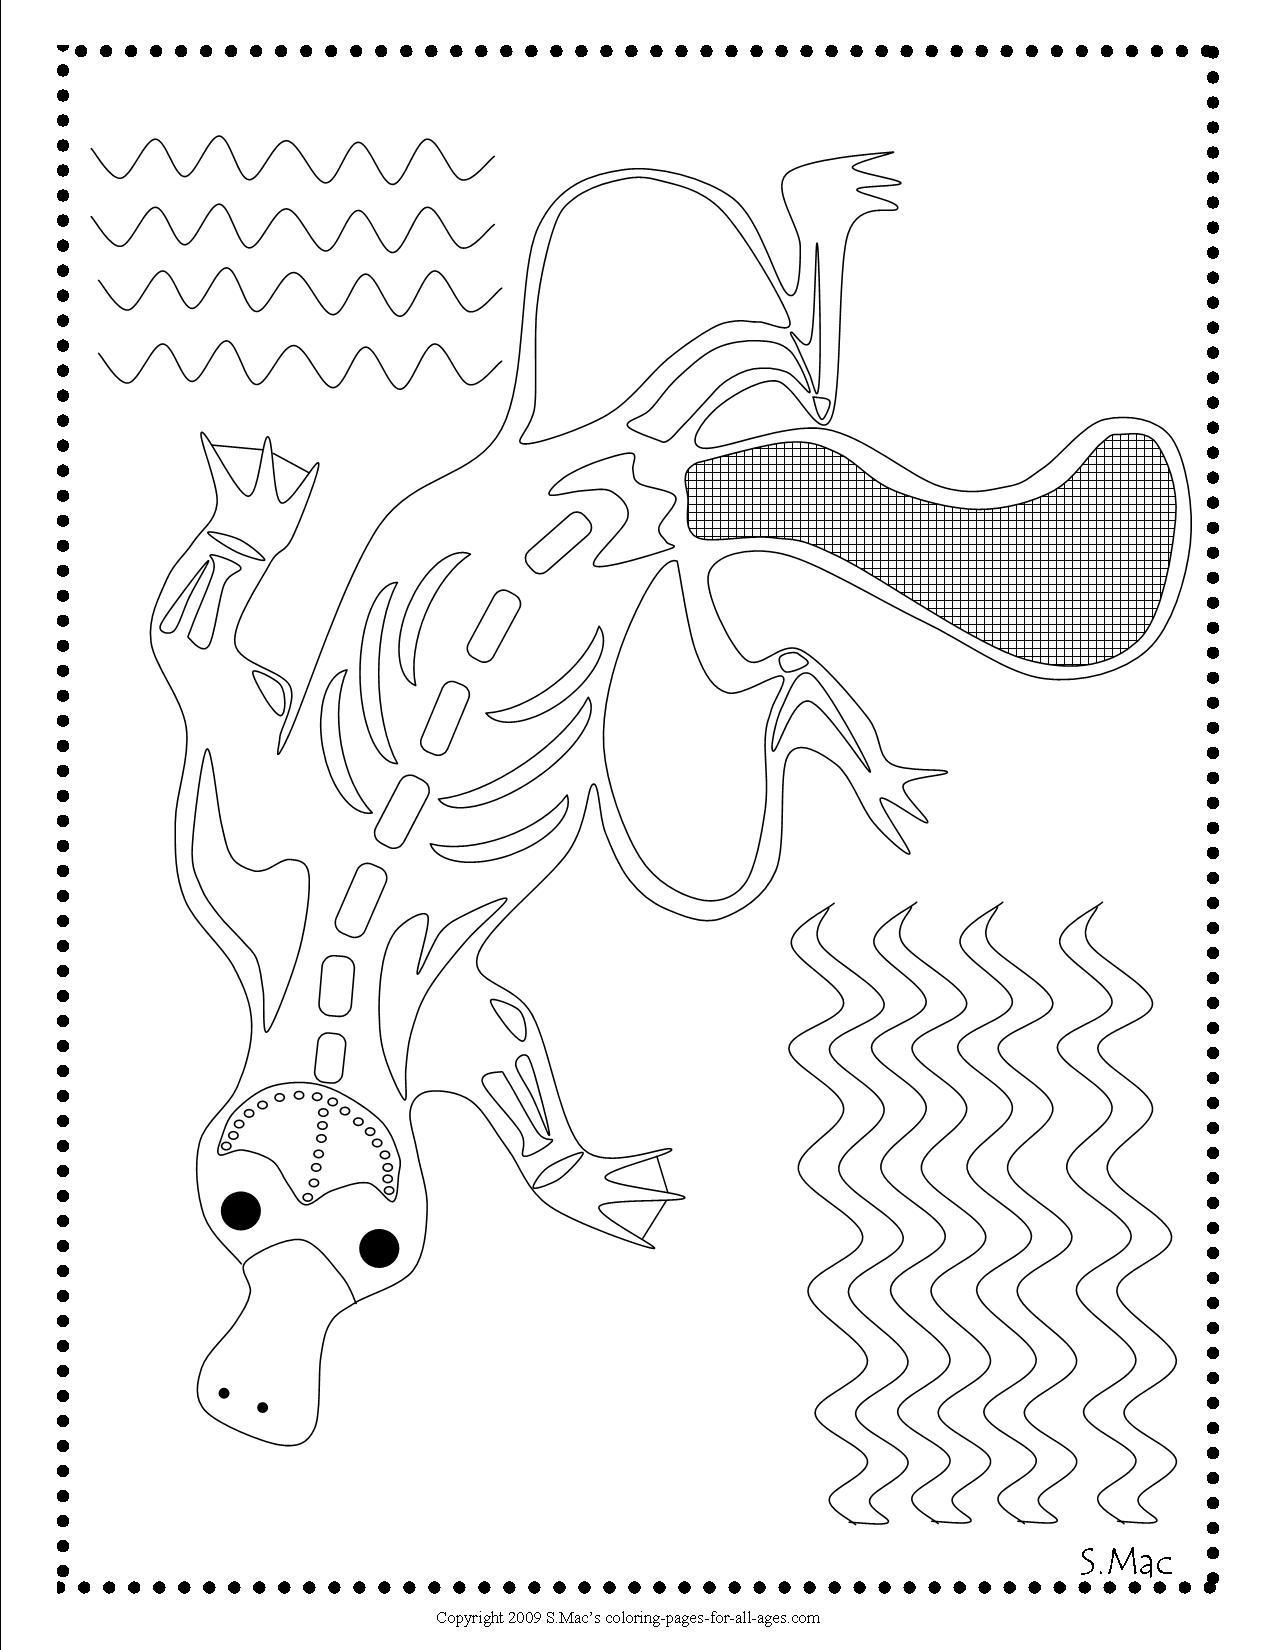 X Ray Art Platypus Coloring Page By S Mac Xray Art Aboriginal Art For Kids Colouring Art Therapy